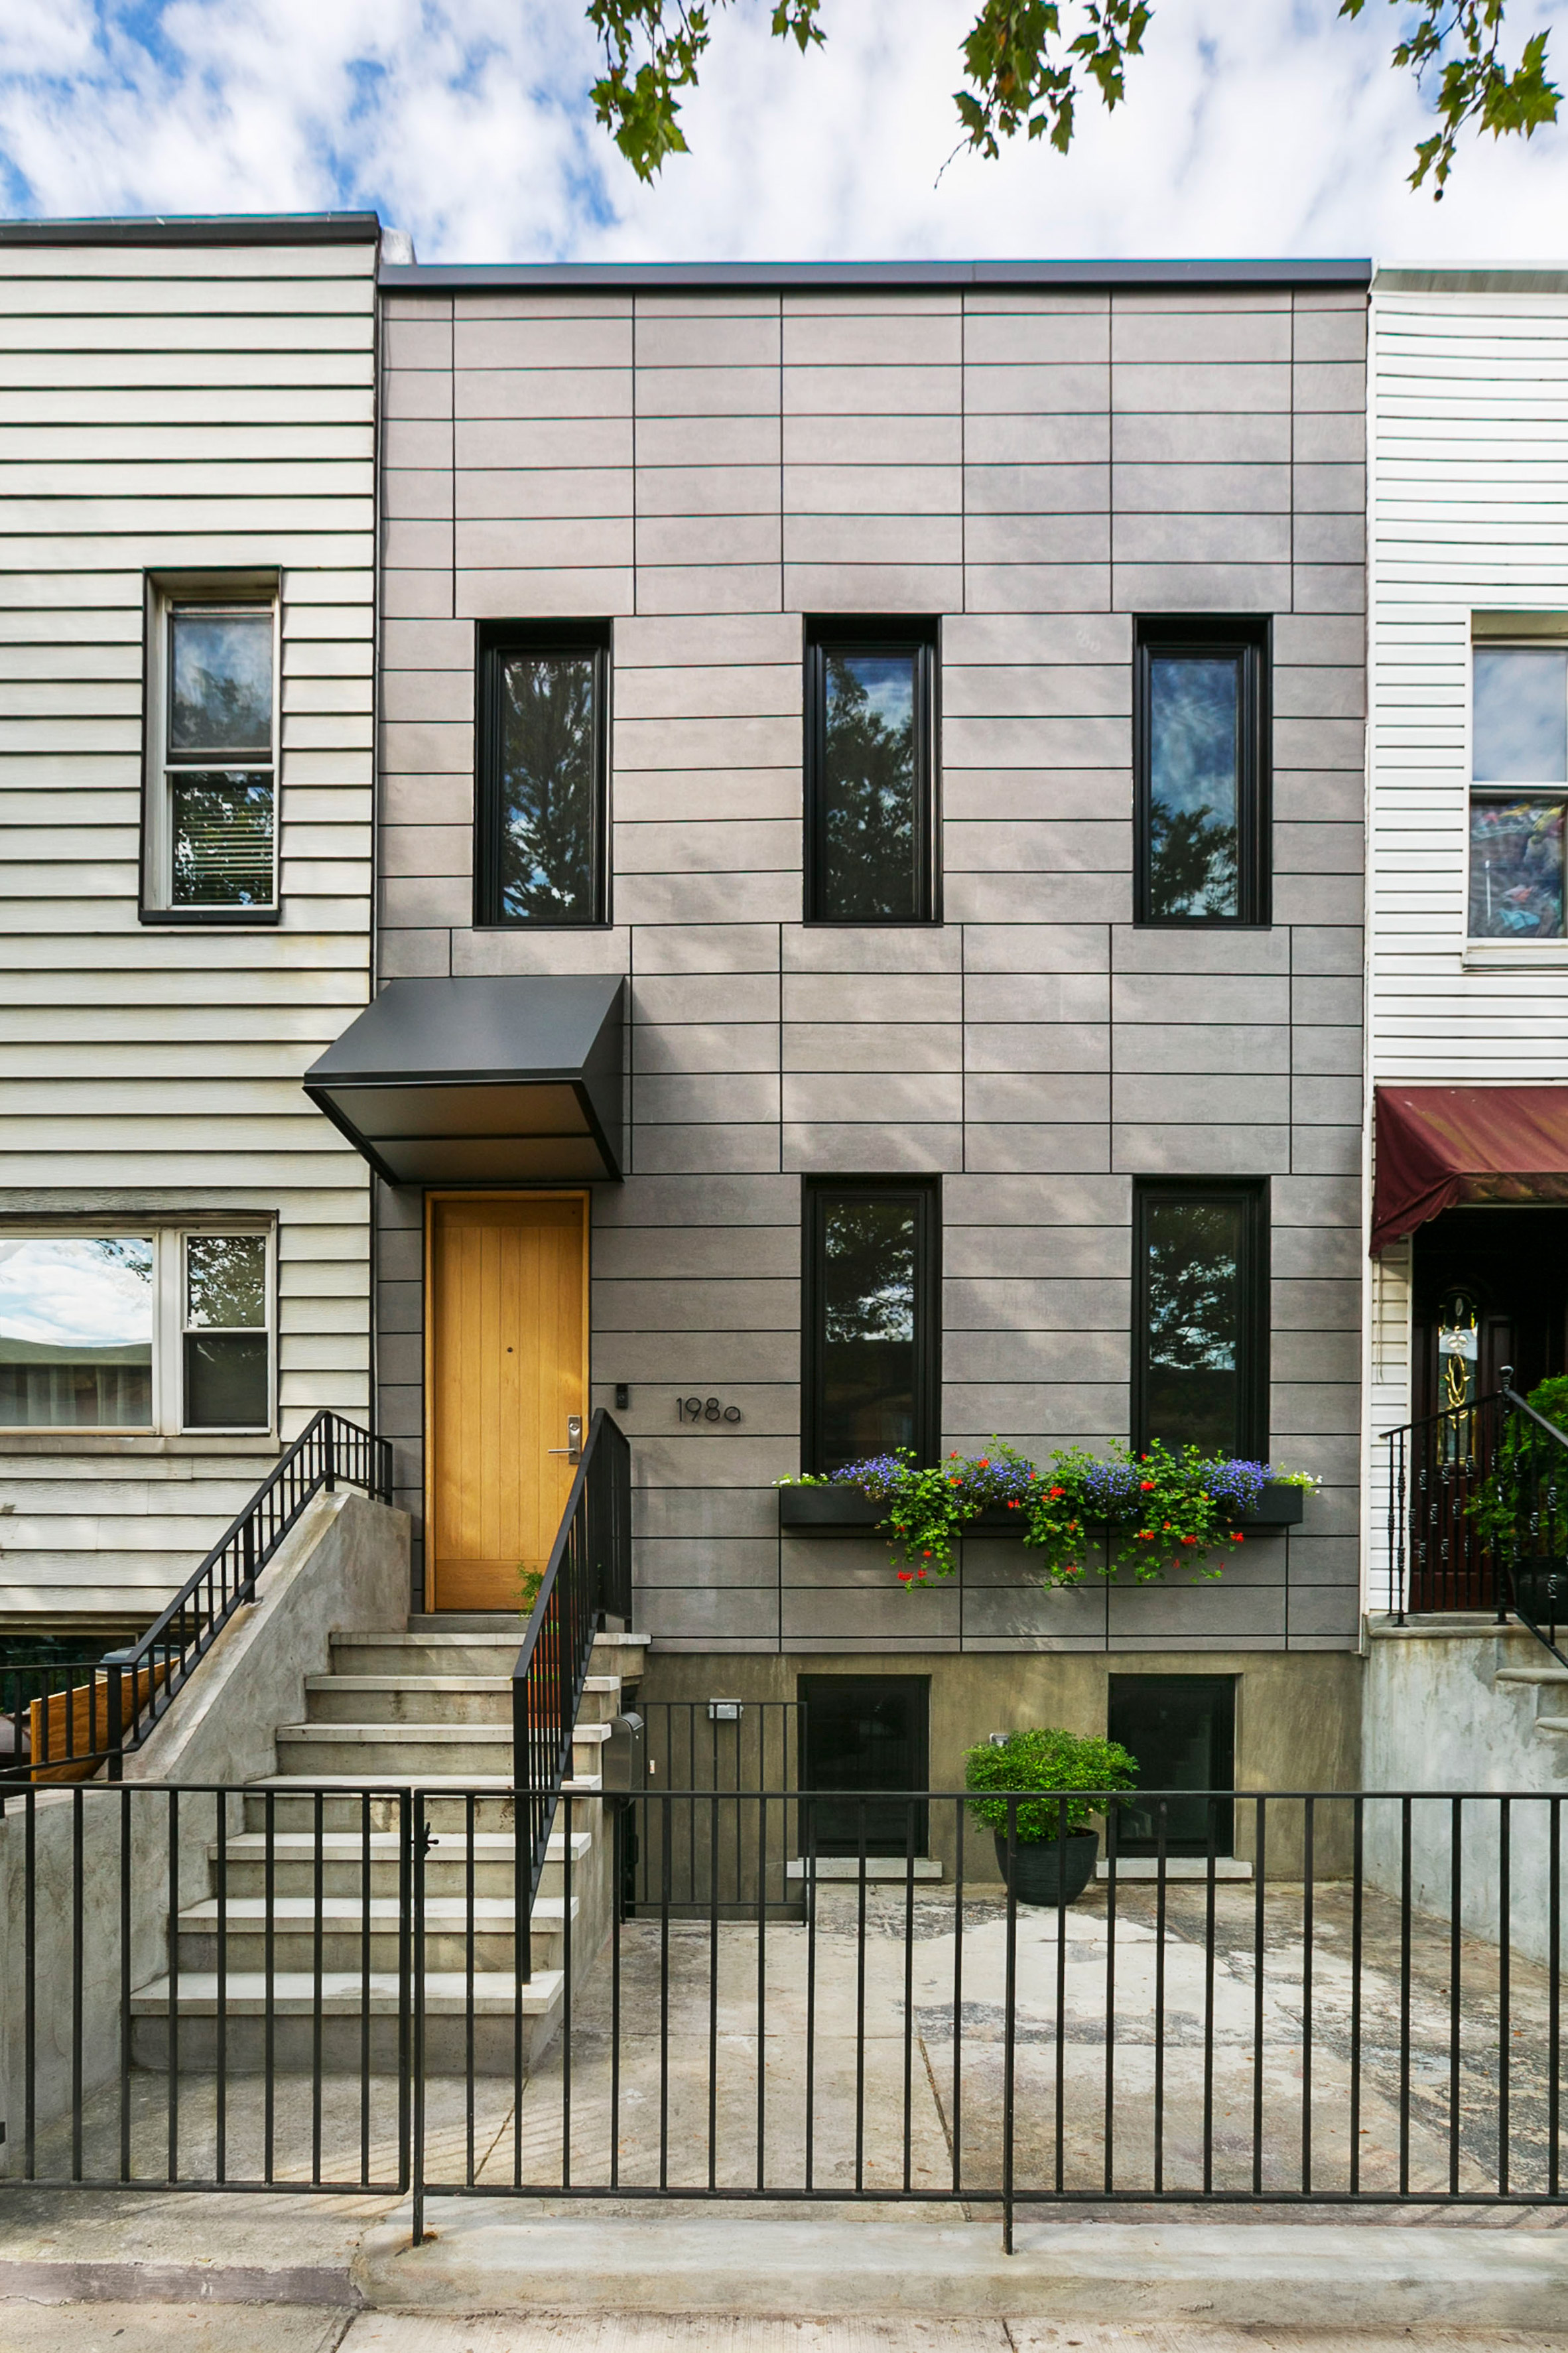 Bostudio updates Sunset Park Row House with fibre-cement cladding and open layout